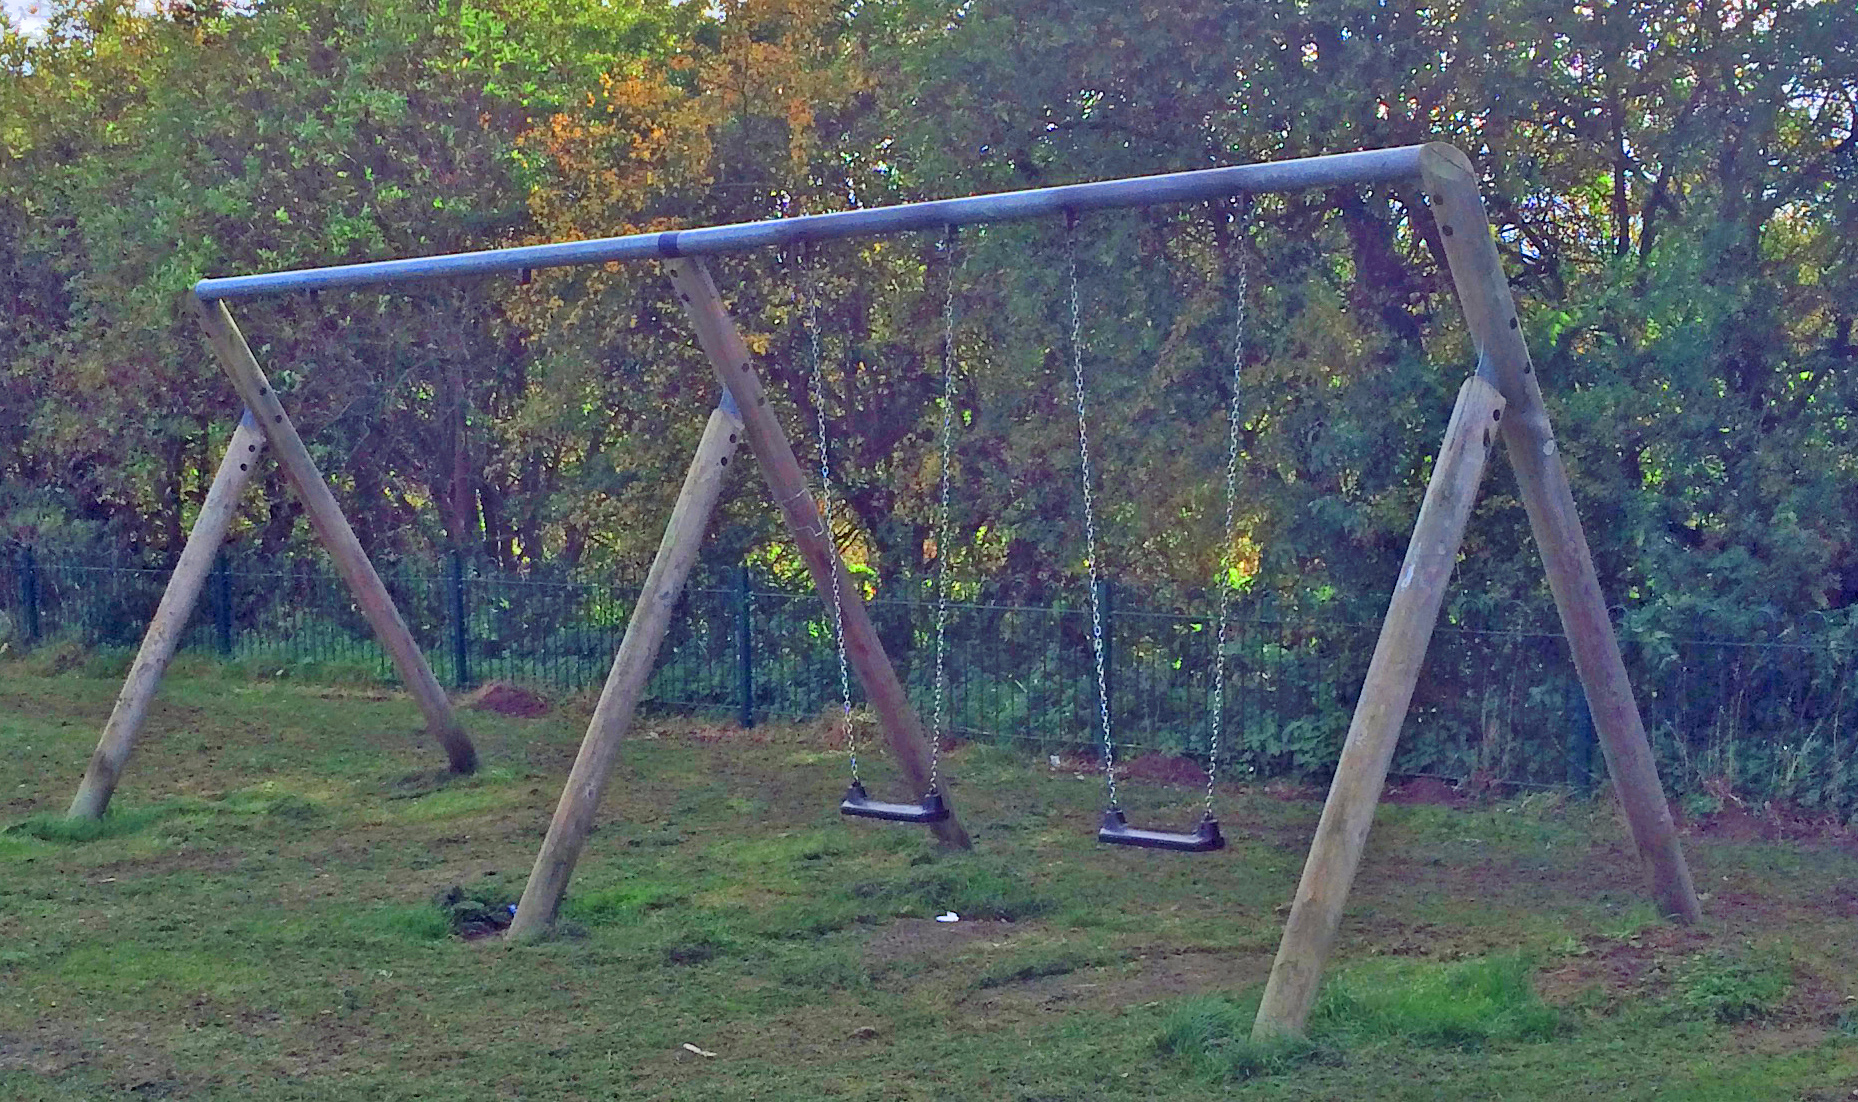 Swings damaged on Grange Lane aprk